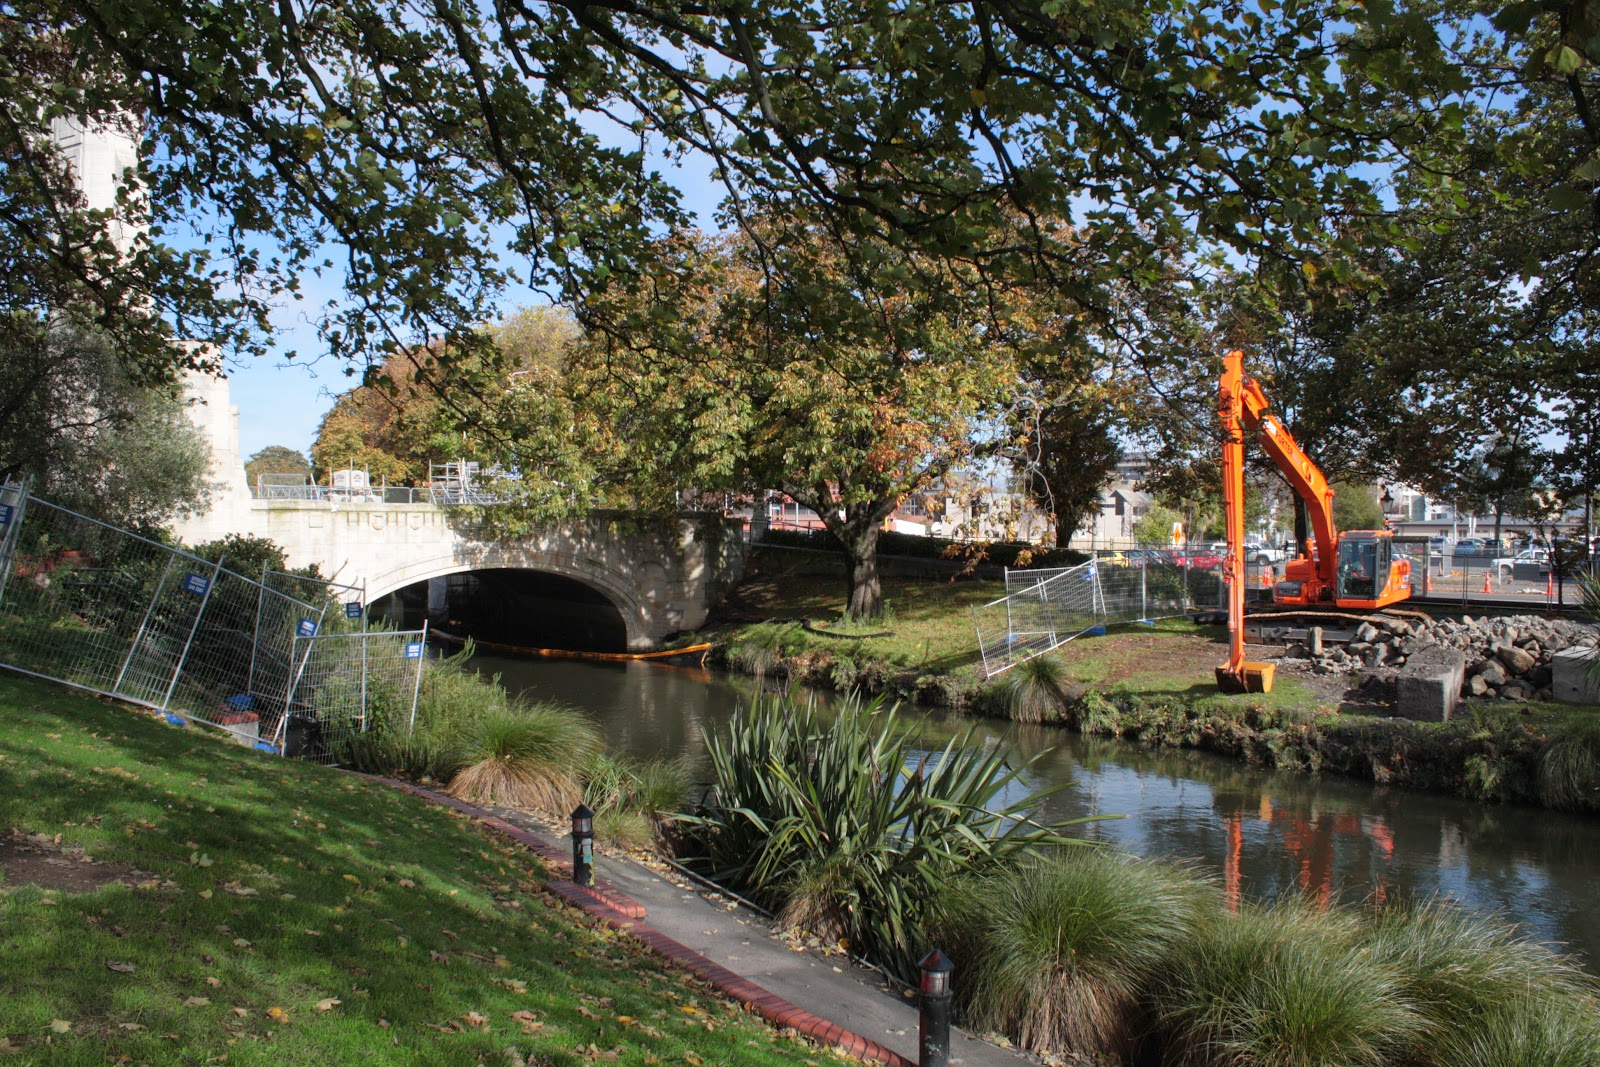 The Avon River, Christchurch, with diggers and hurricane fence.